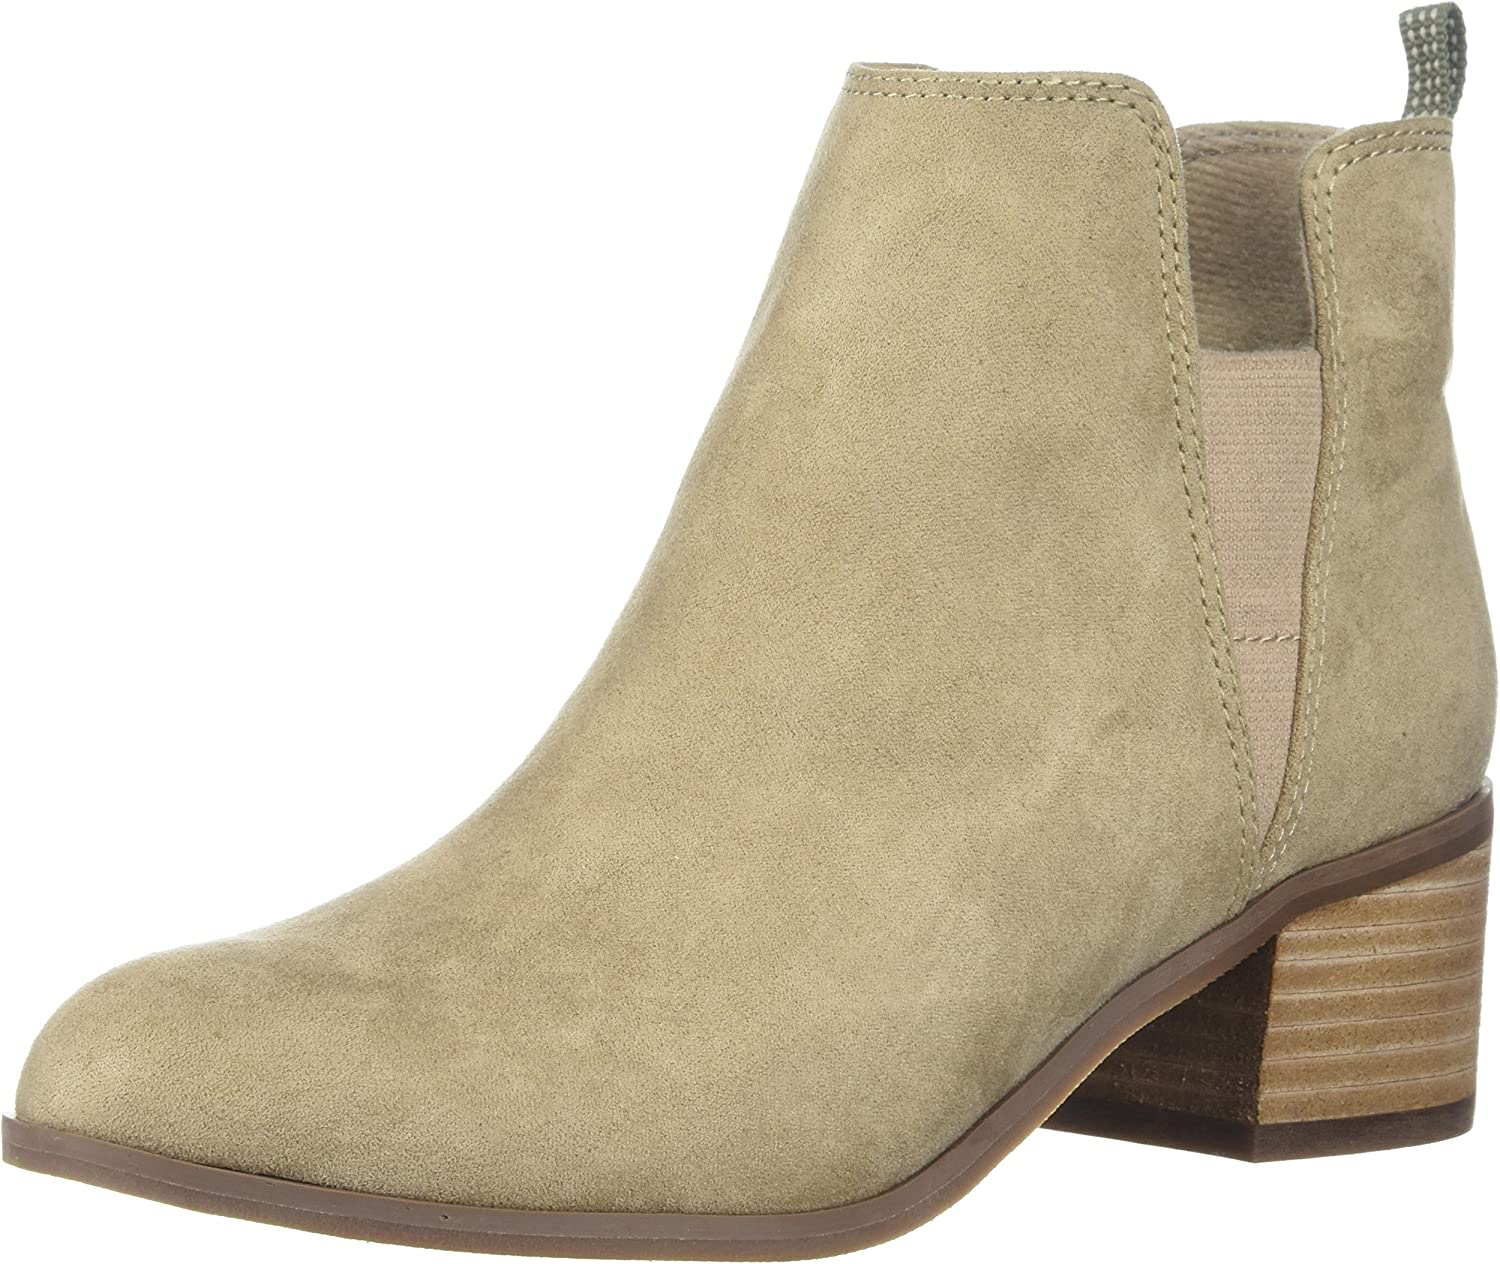 Dr. Scholl's shoes Womens Addition Ankle Boot